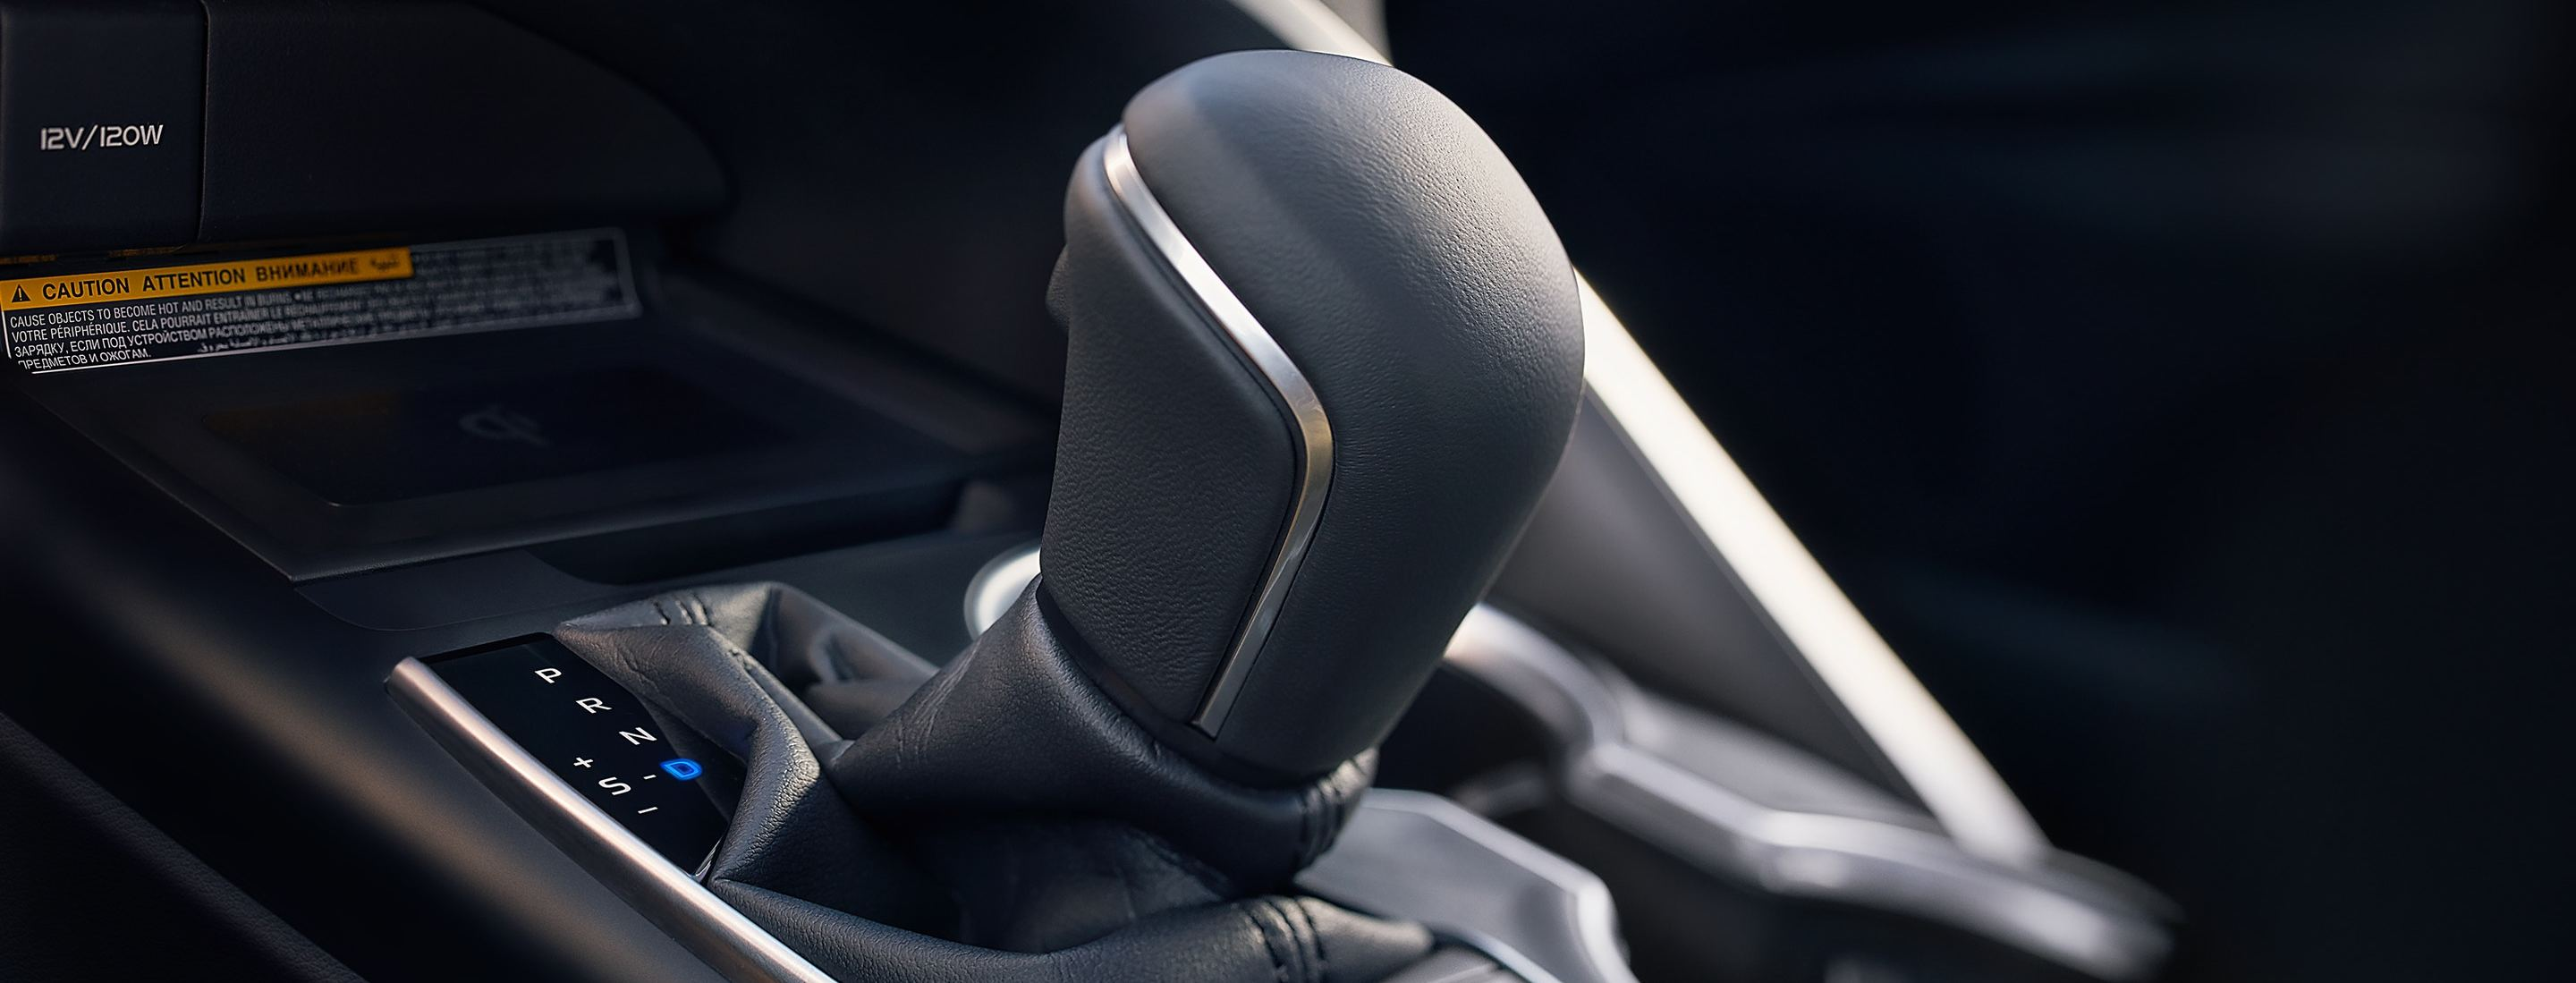 2020 Toyota Camry Shifter